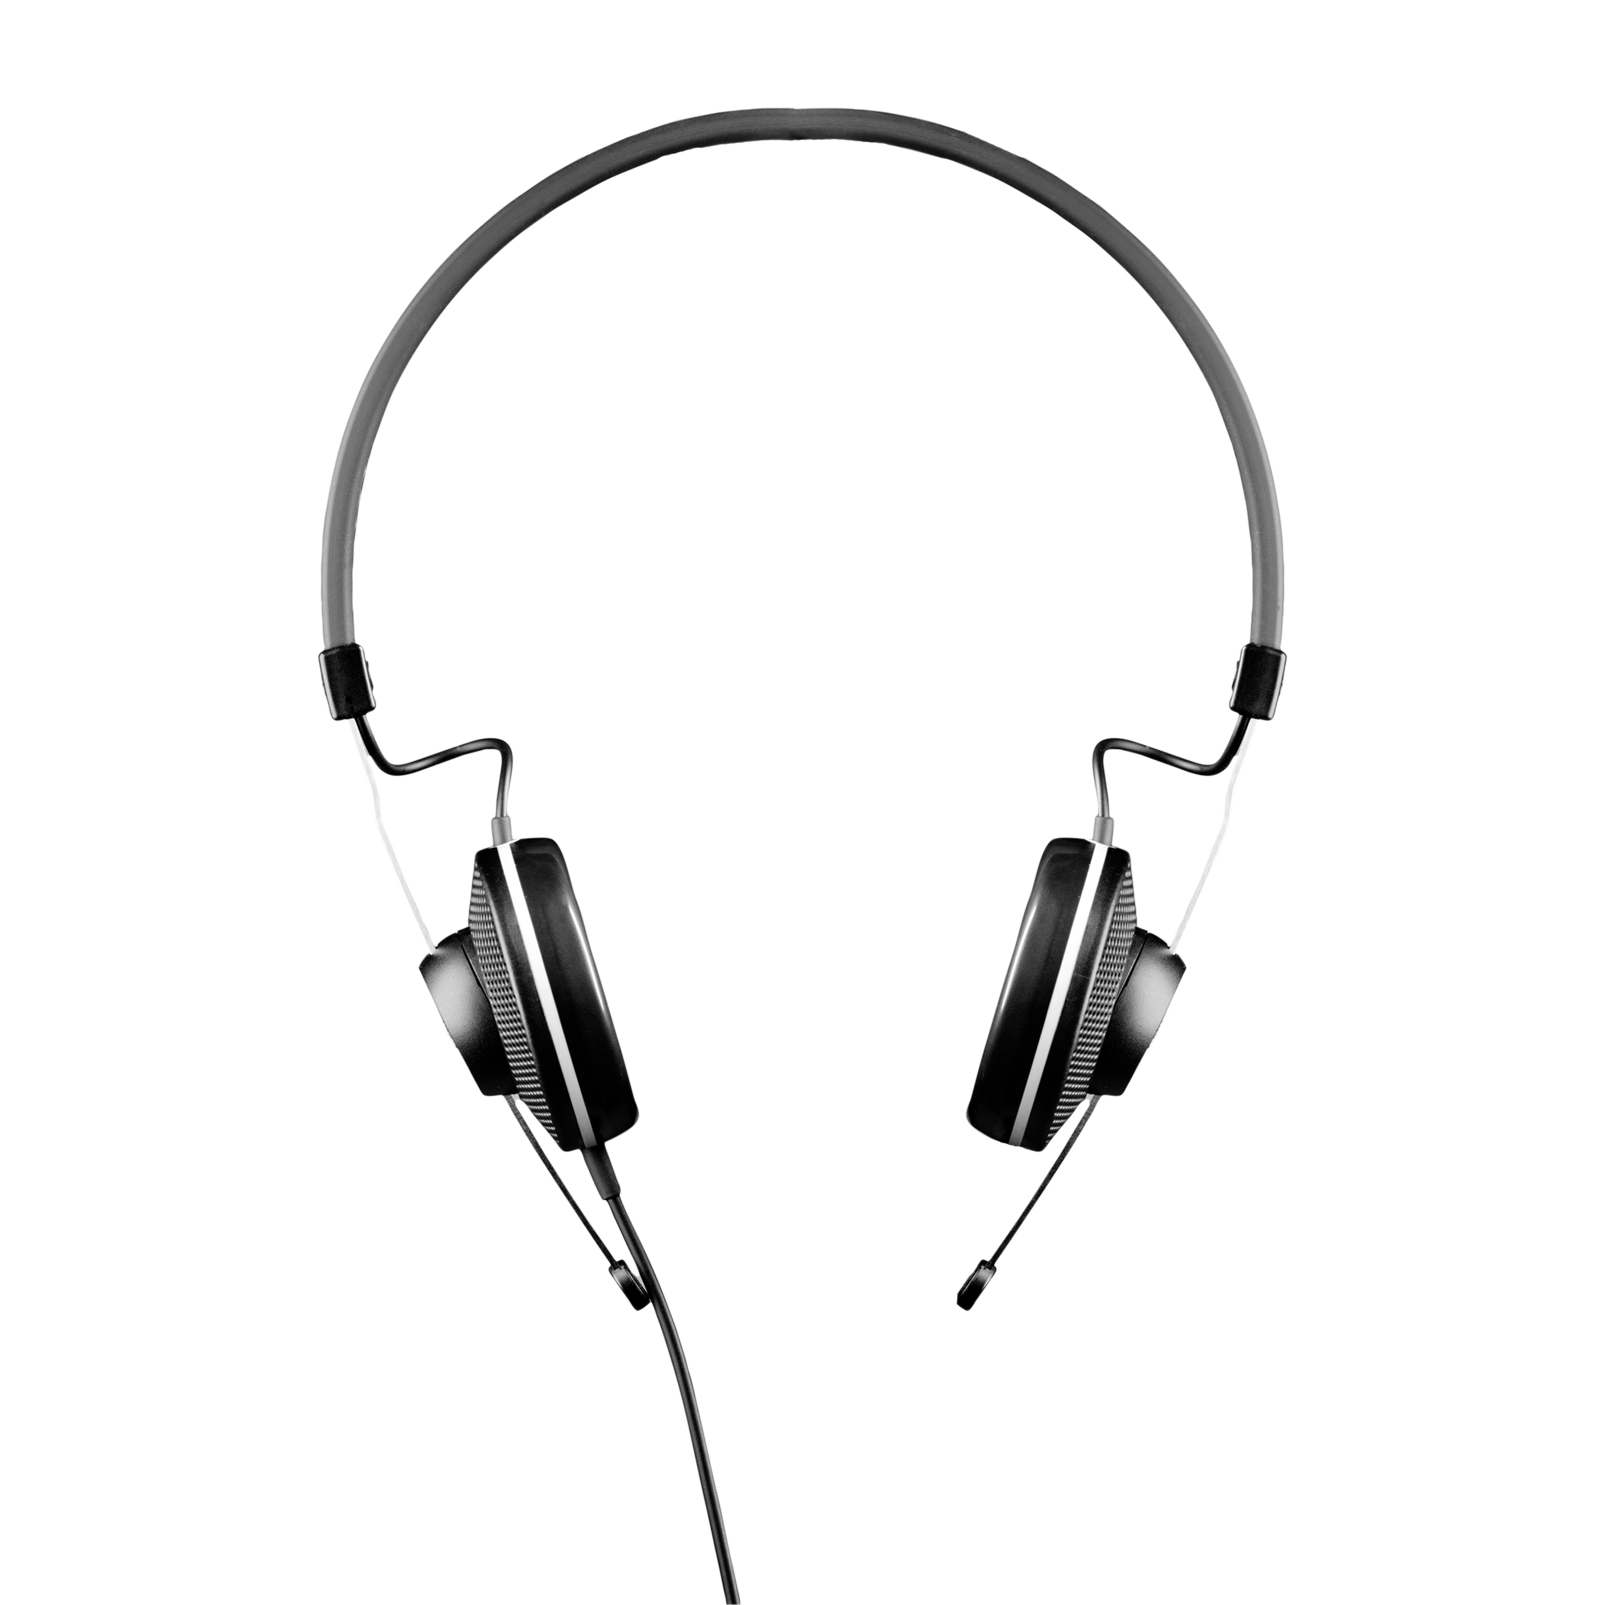 K15 - Black - High-performance conference headphones - Front